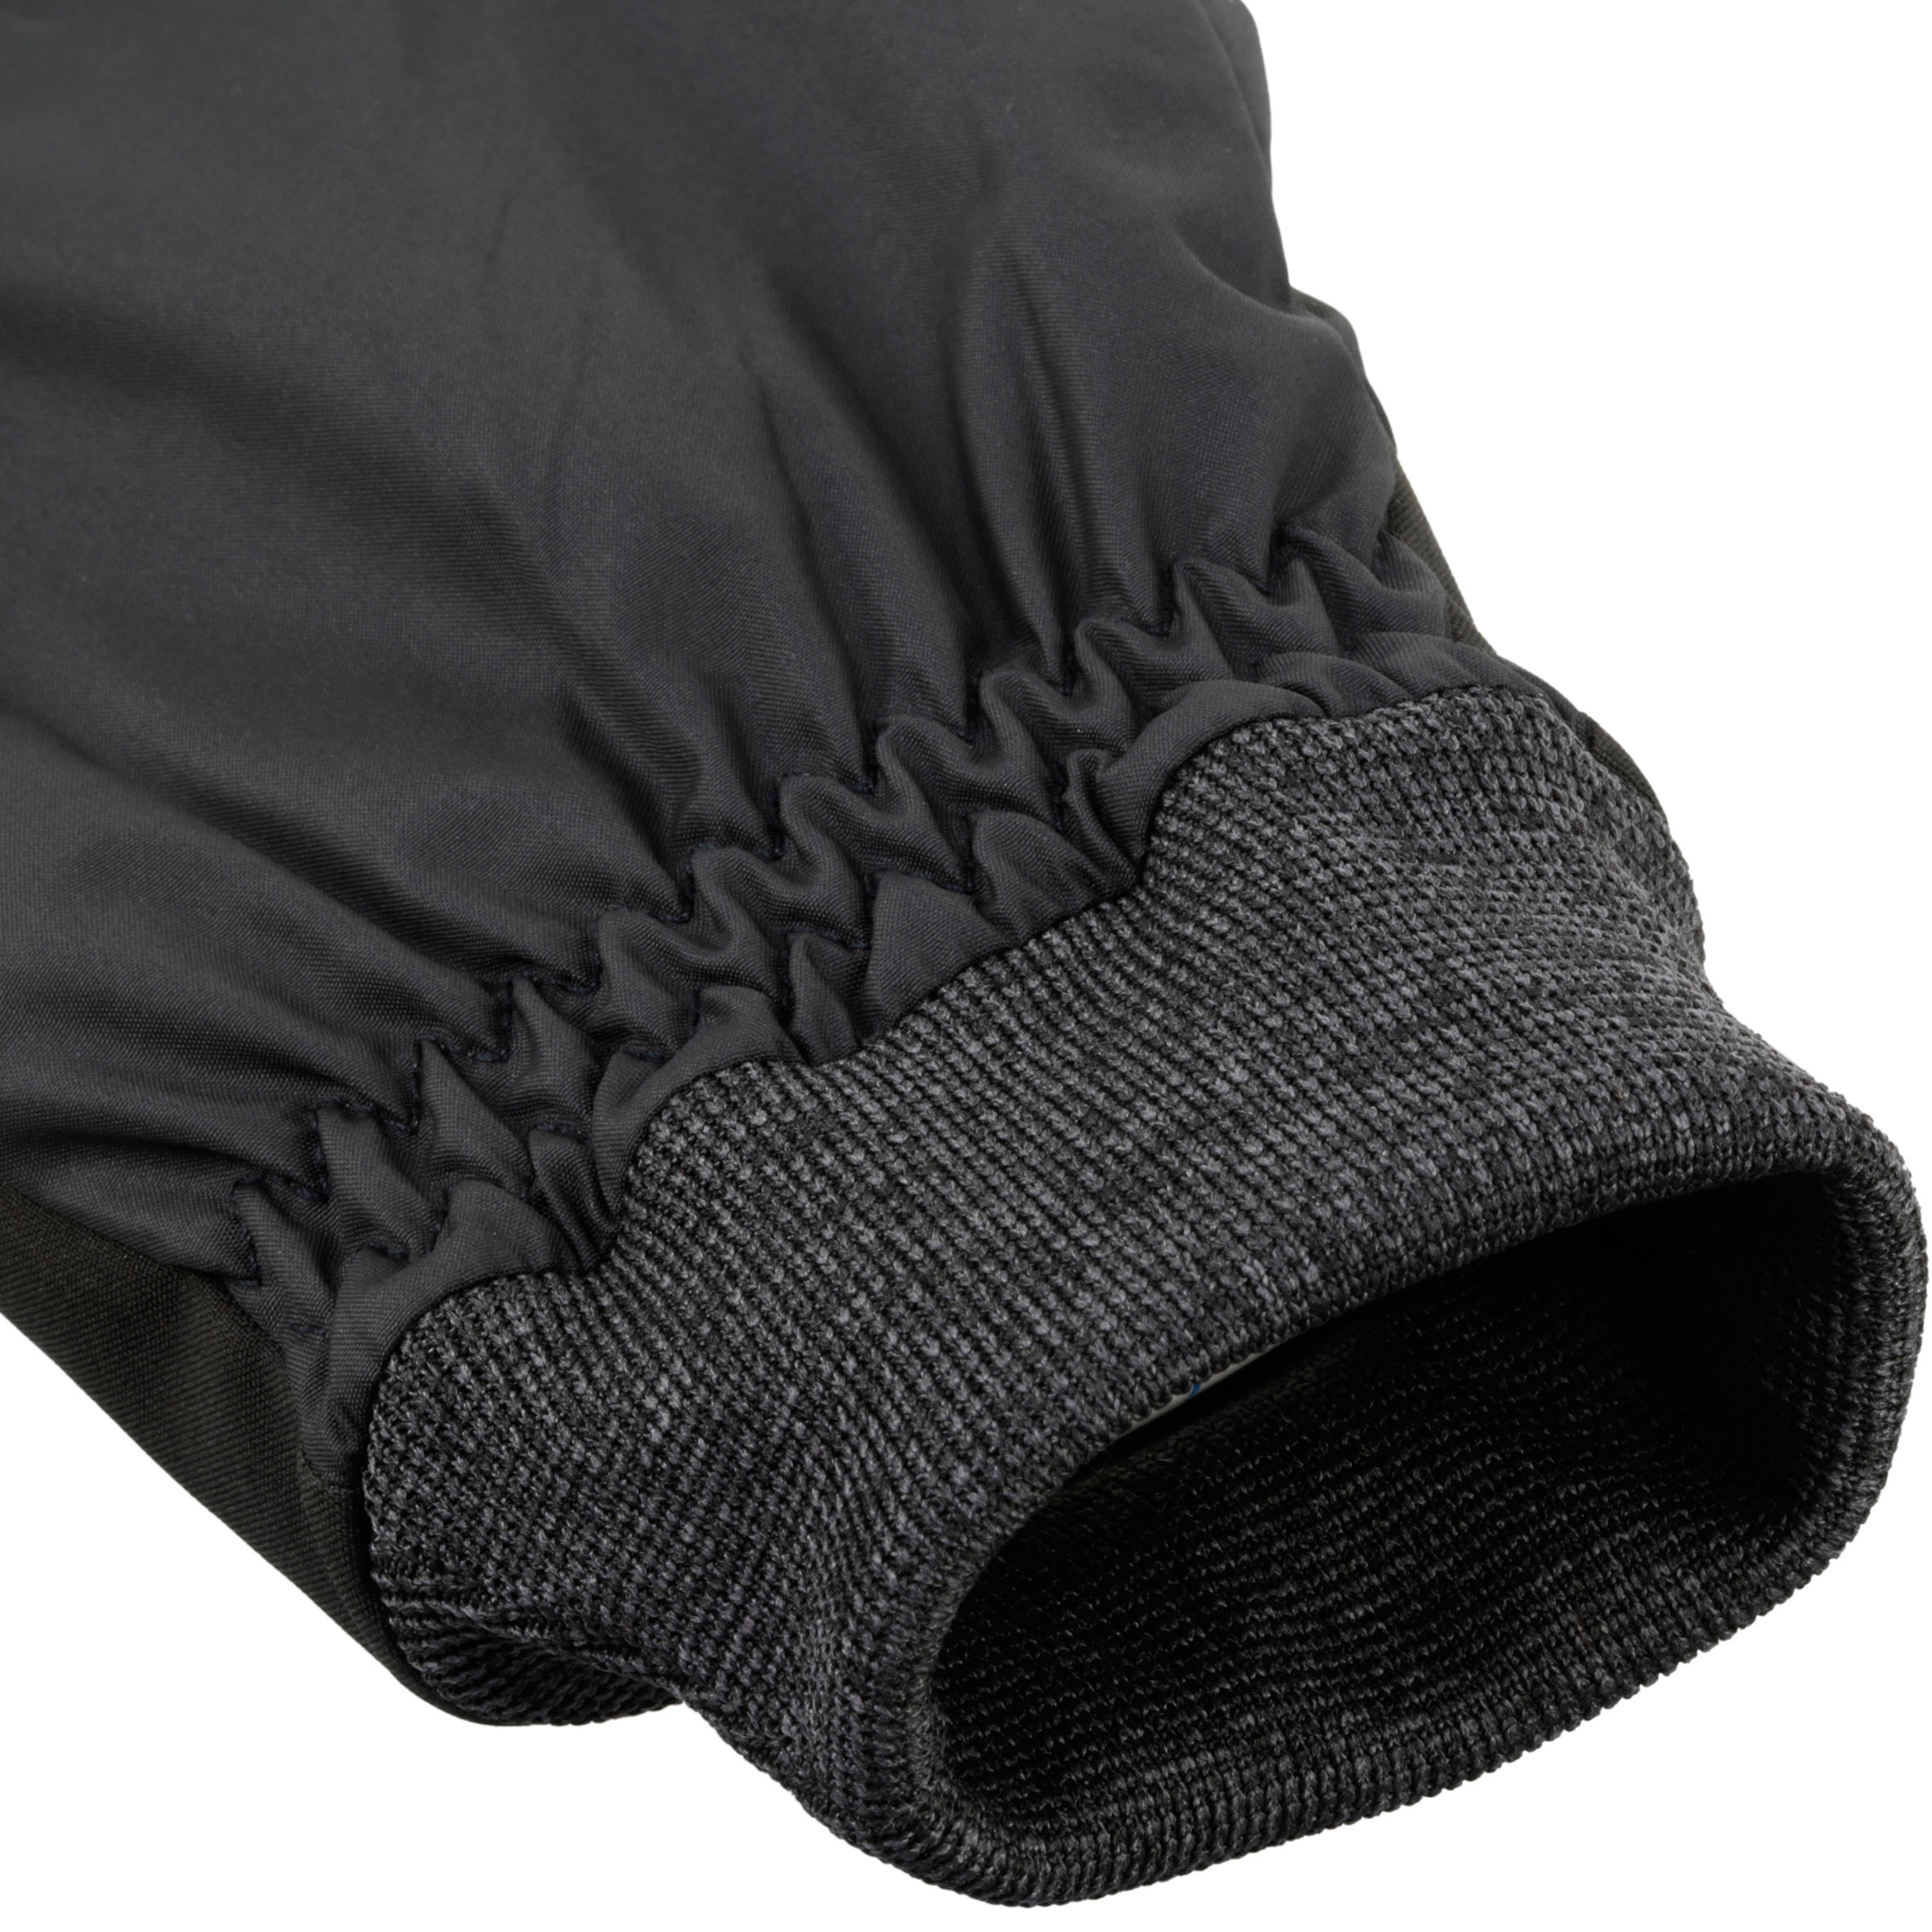 WARM FIT ADULT DOWNHILL SKIING GLOVES - BLACK